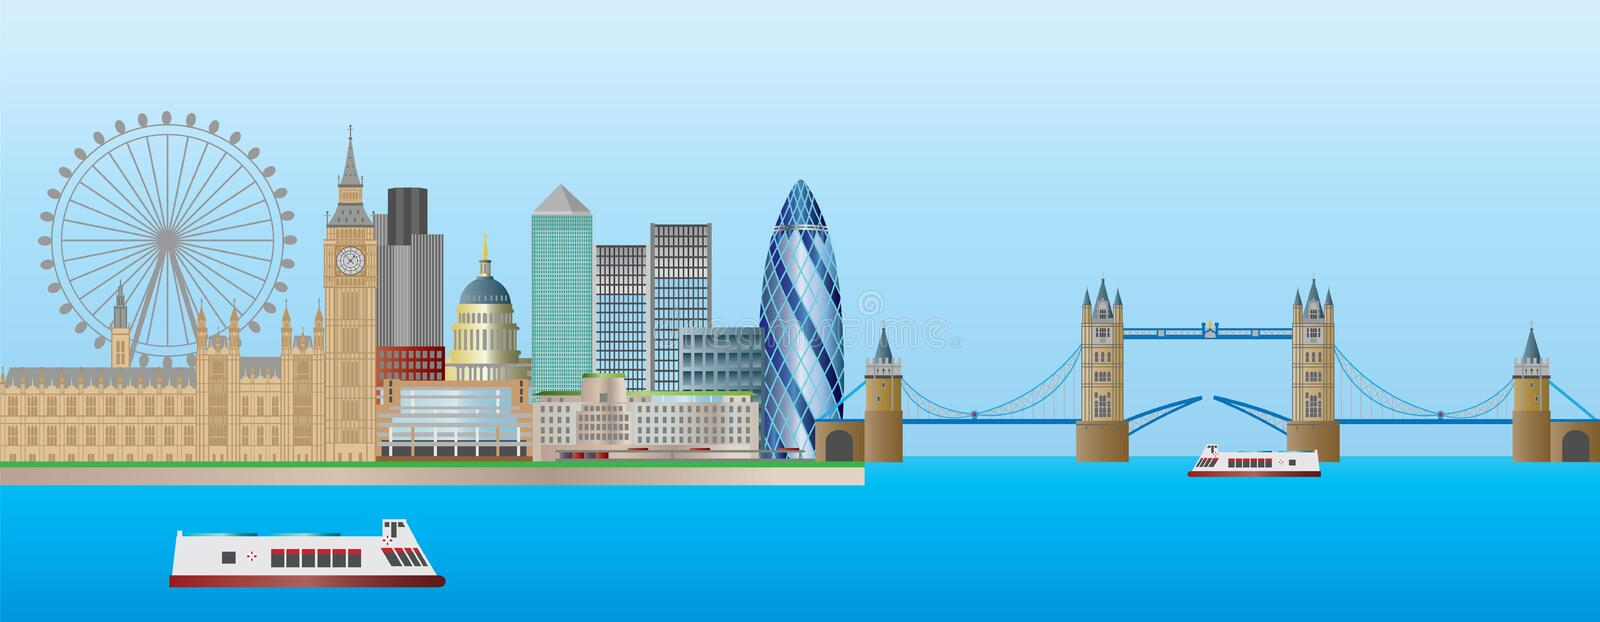 London Skyline Panorama Illustration royalty free illustration